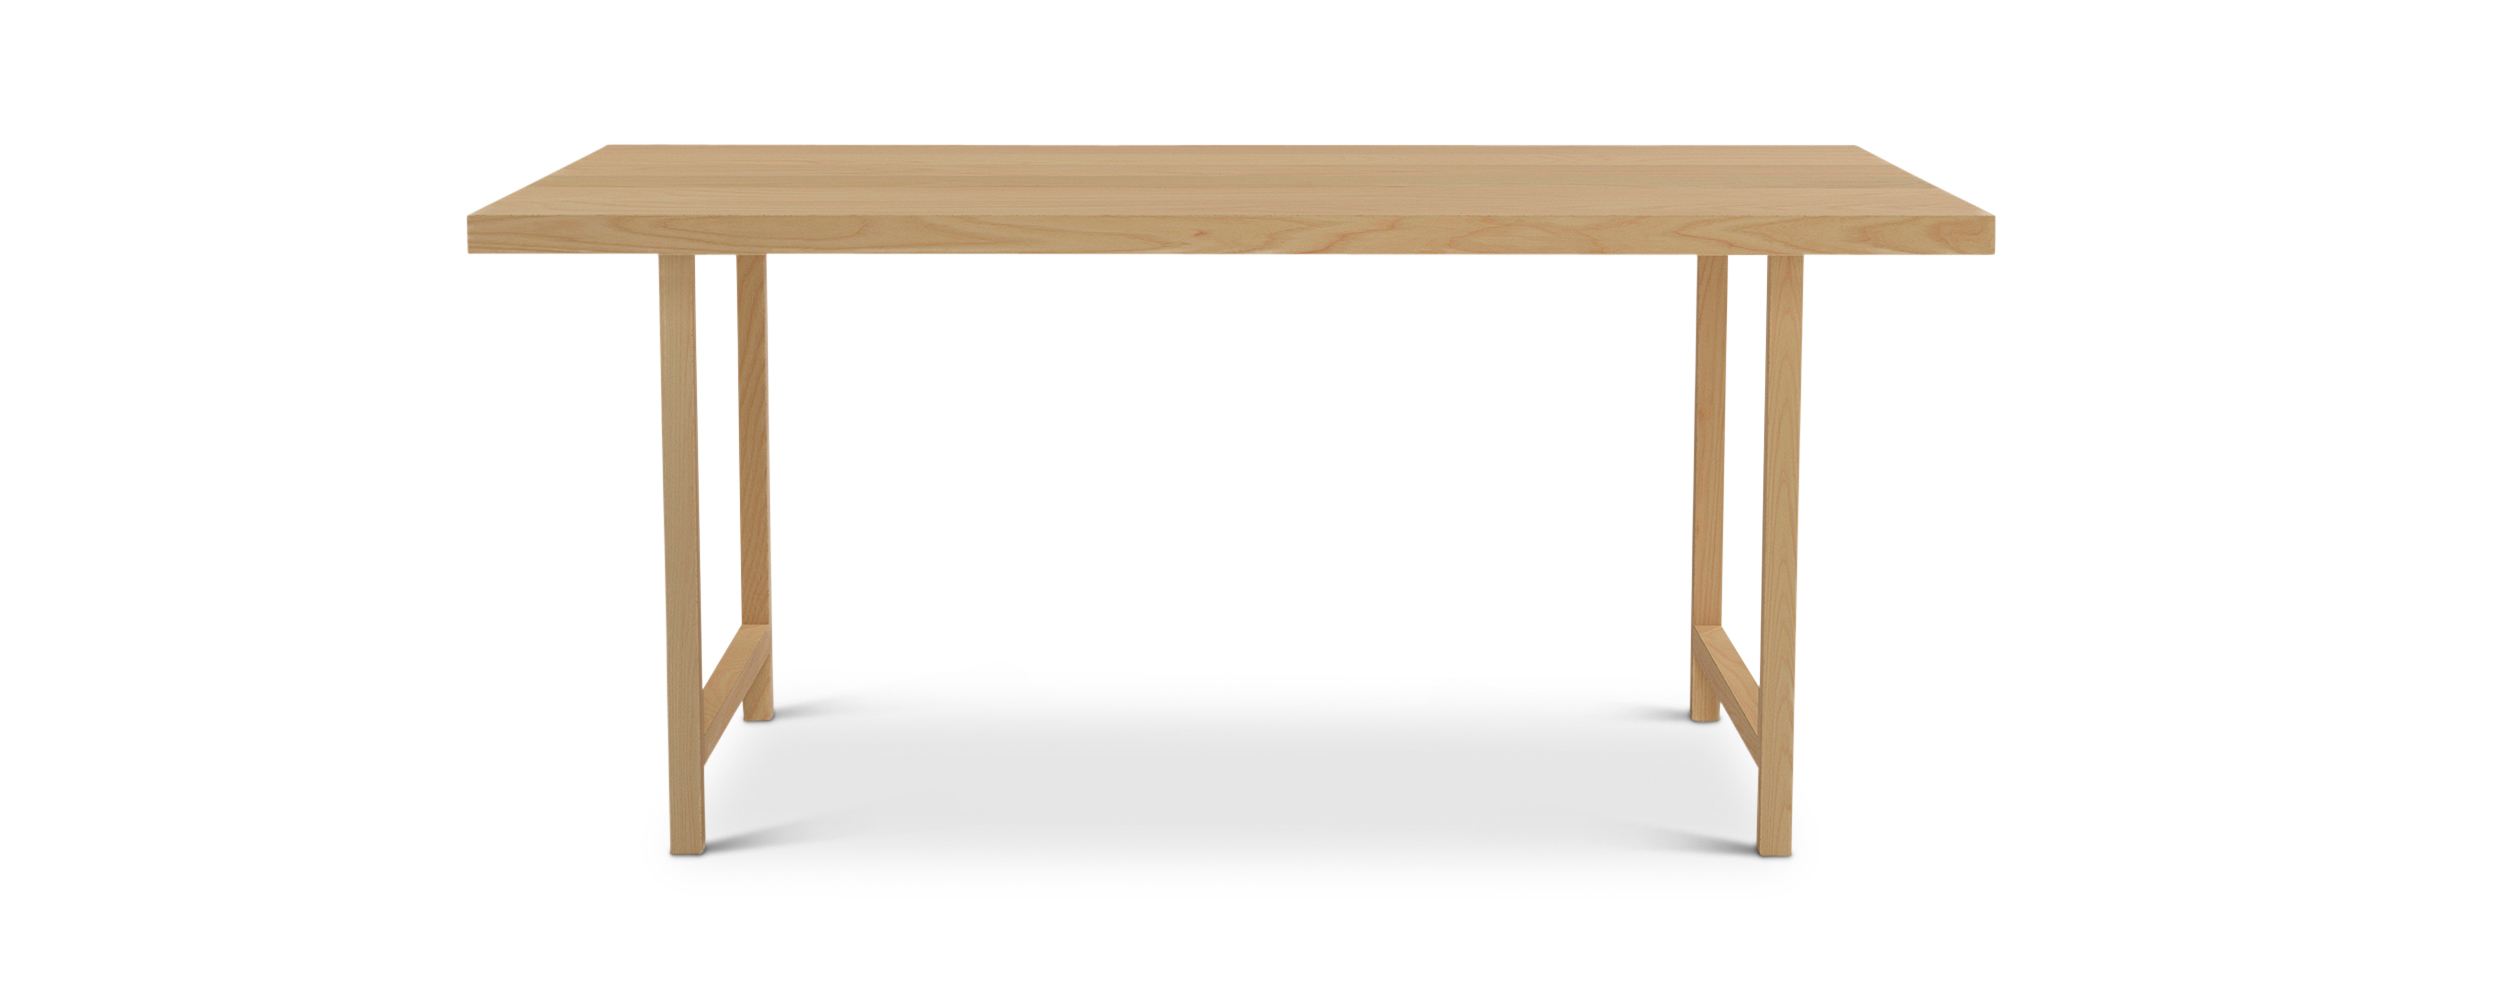 "Series 171 66"" Minimalist Nordic Furniture ash dining table"